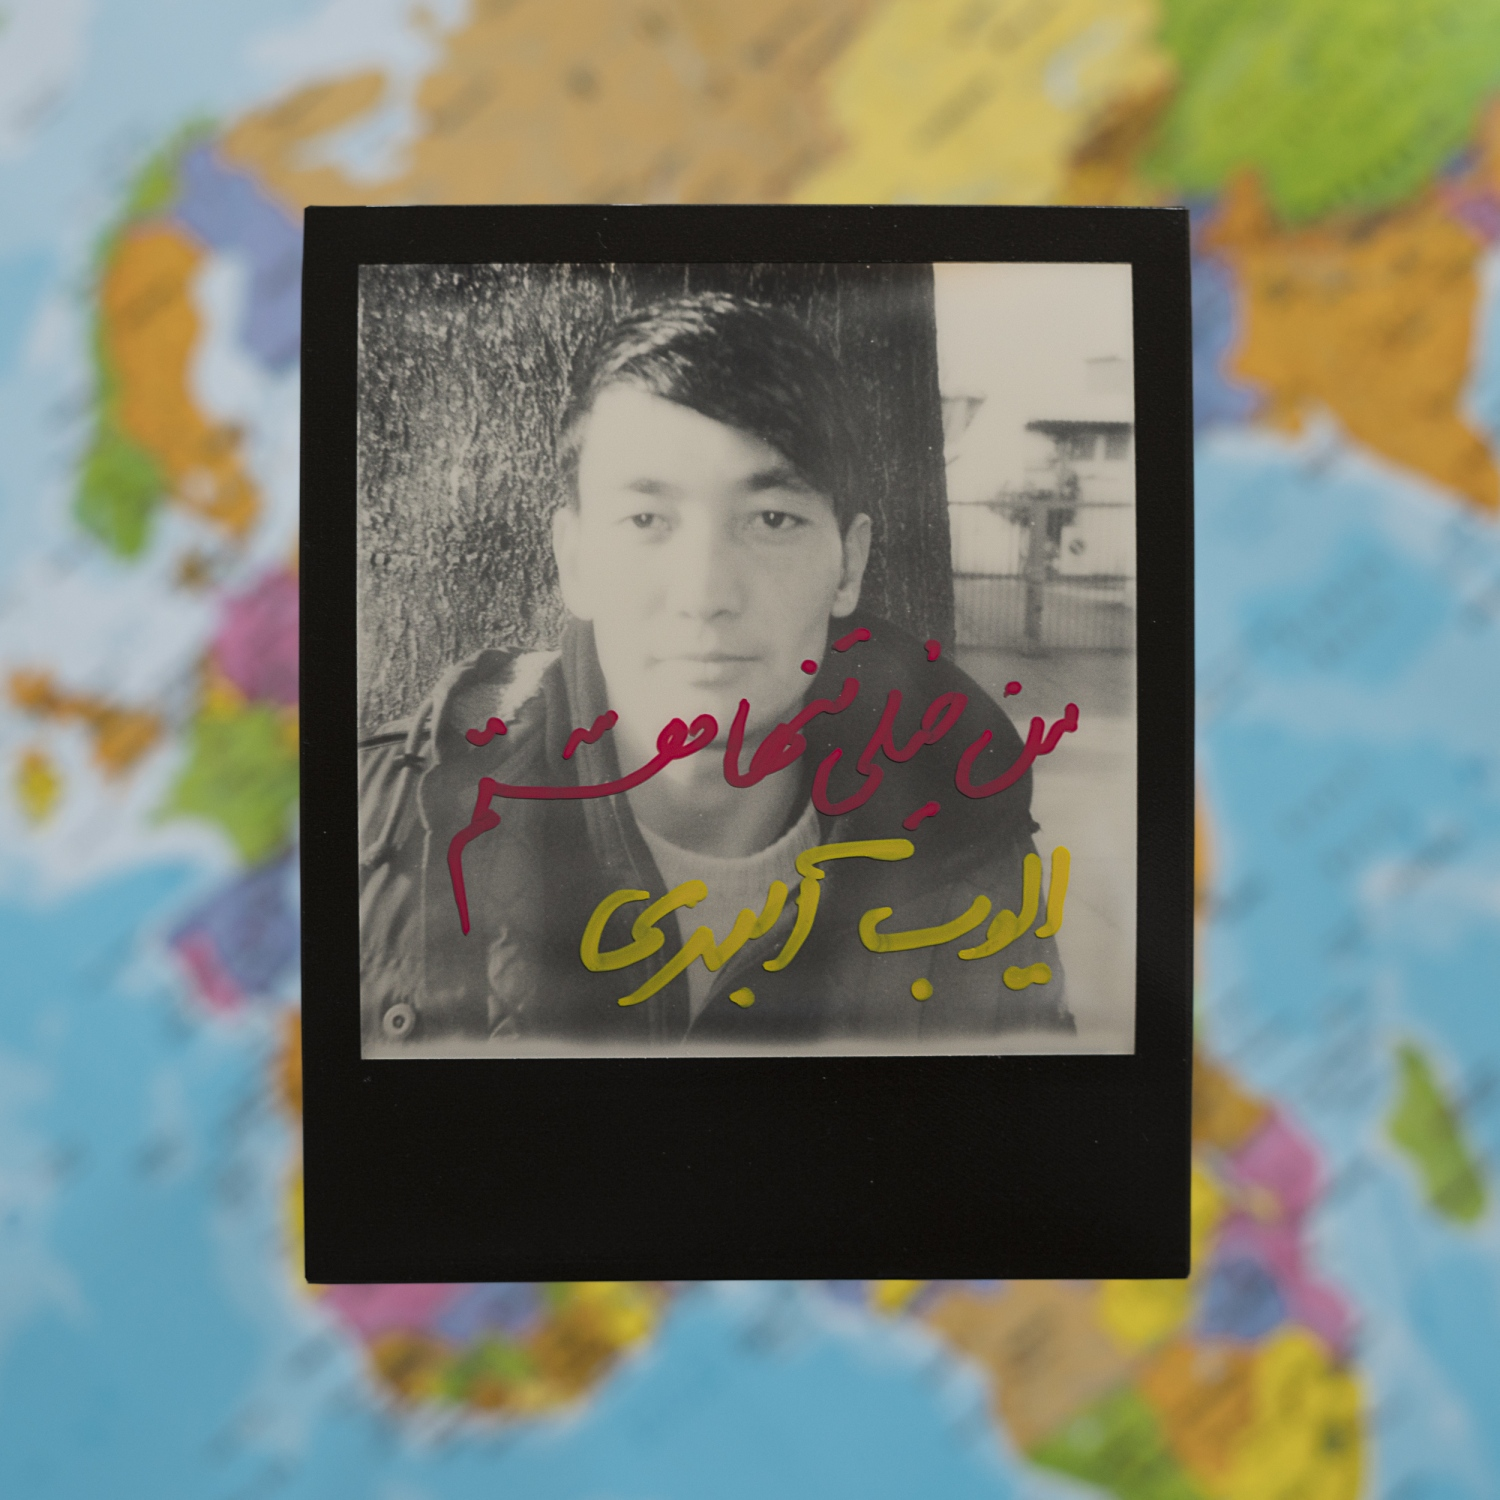 Ayoub/Afghanistan/22 years old. Ayoub wrote in Persian that he feels lonely, his family was killed by Daesh and he has traveled alone to Europe hoping to start a new life away from conflict in France.